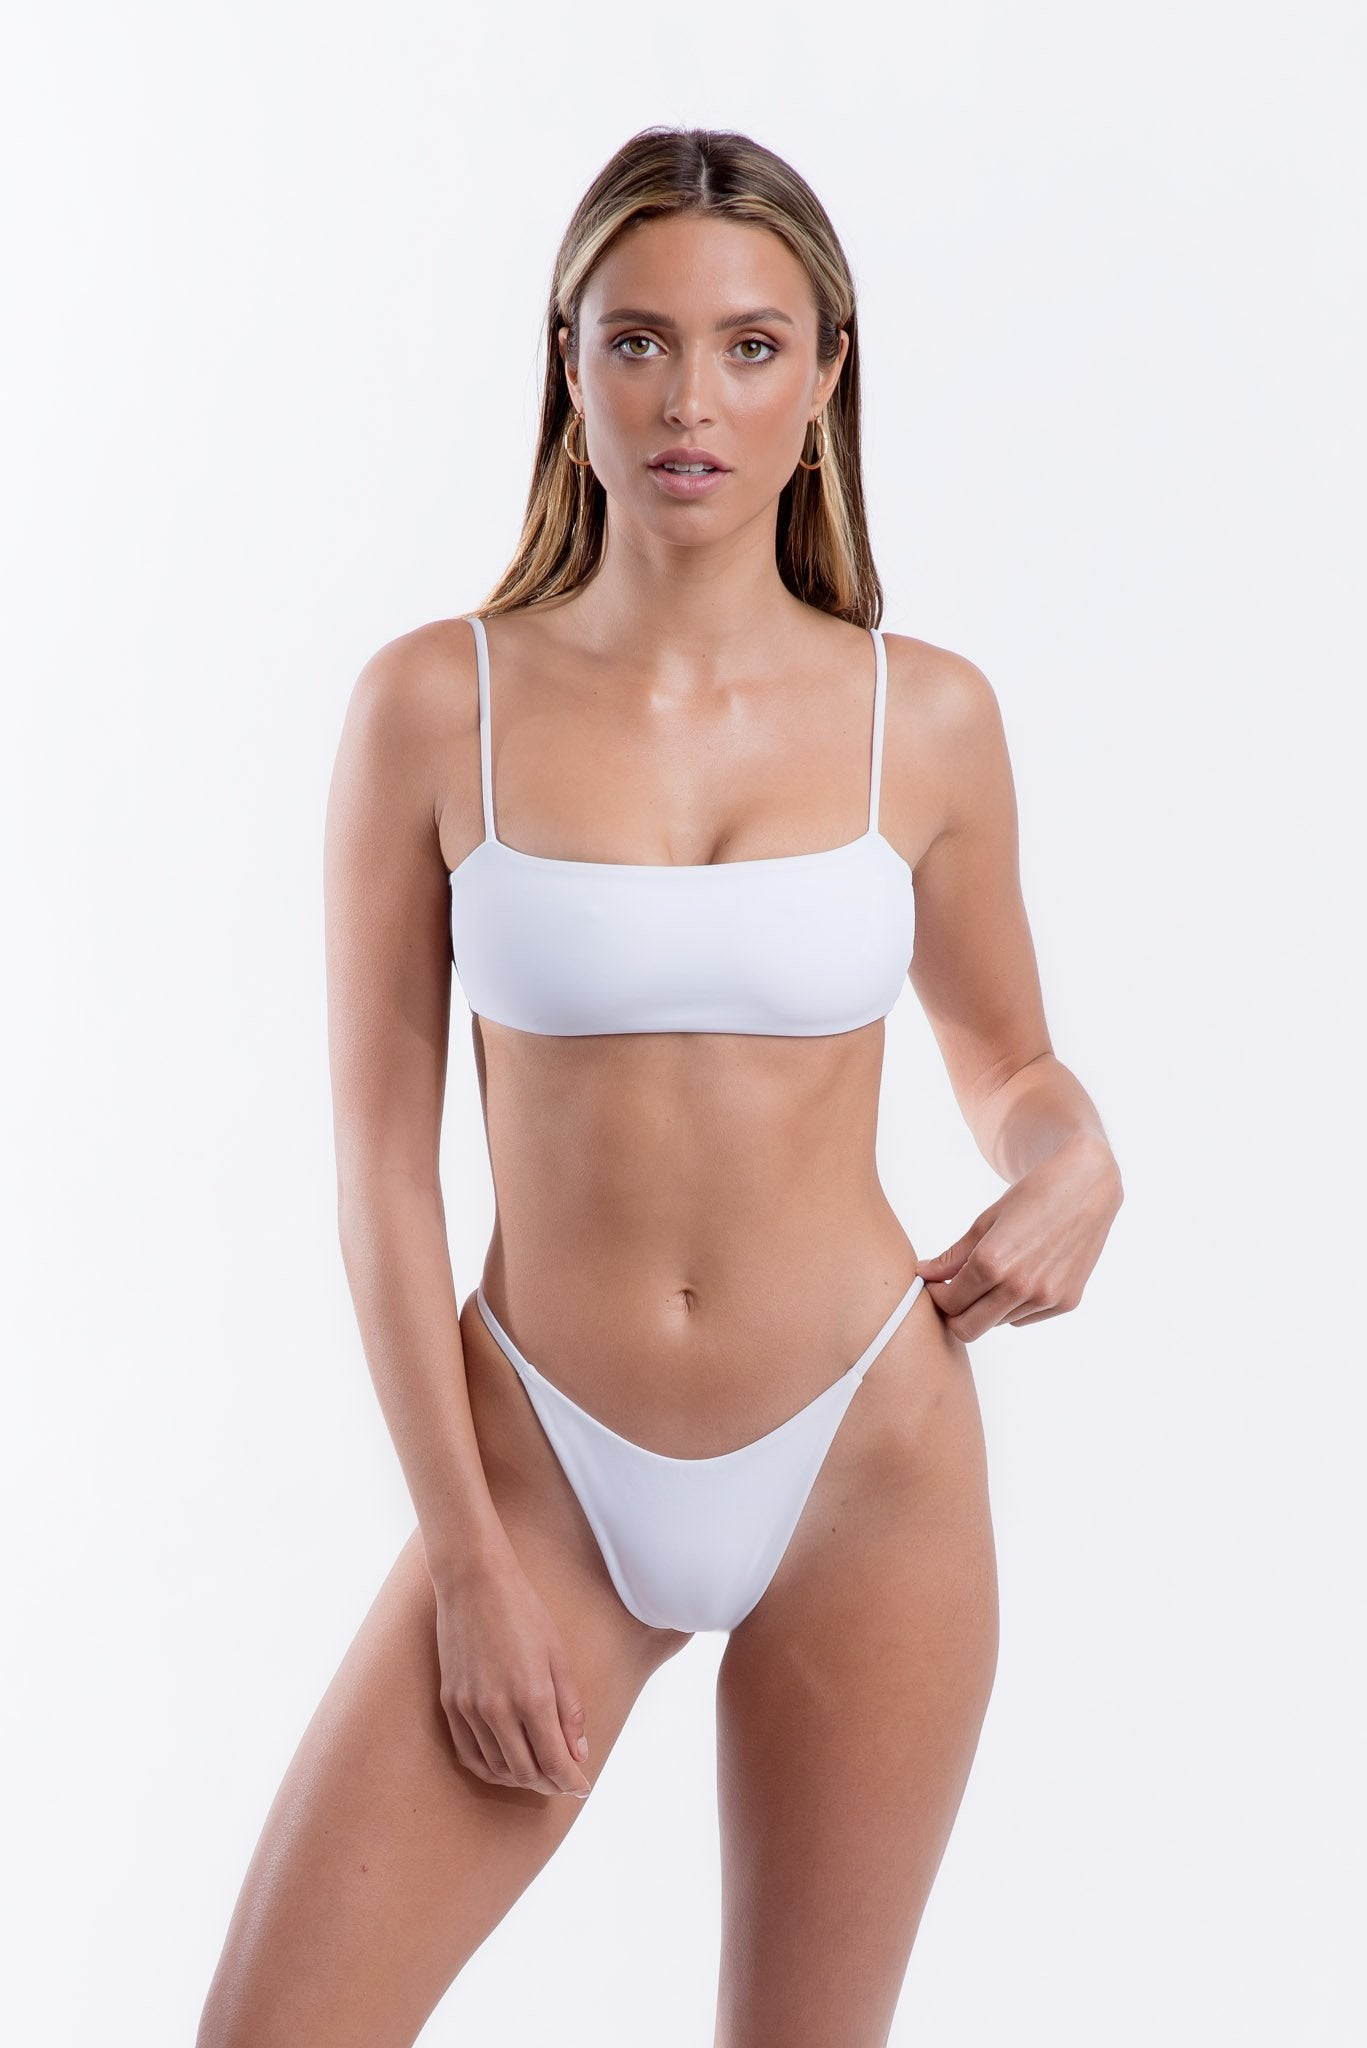 Cartia Top White